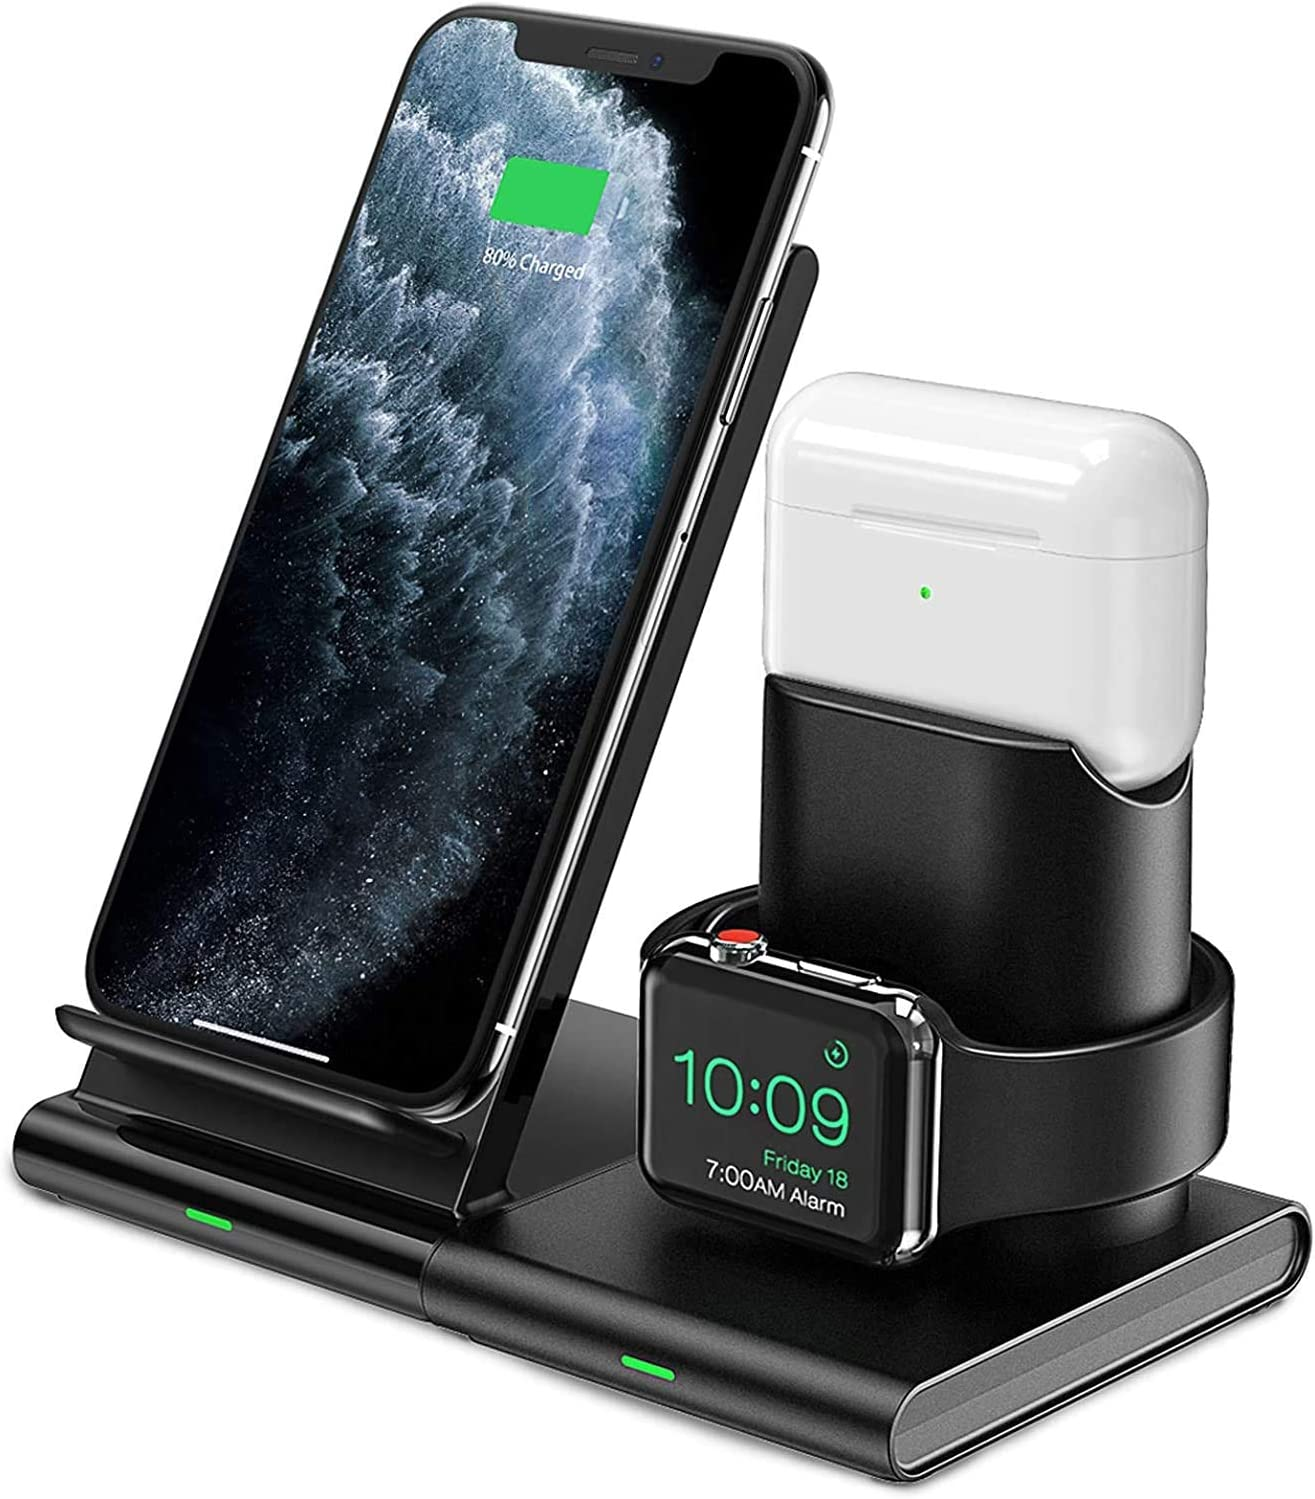 Hoidokly Wireless Charger 3 in 1 Charging Station Dock for Apple Watch Series 6/SE/5/4/3/2, Airpods Pro/2, 7.5W Qi Fast Wireless Charging Stand for iPhone 11 Pro Max/SE 2020/XS Max/XR/XS/X/8/8 Plus